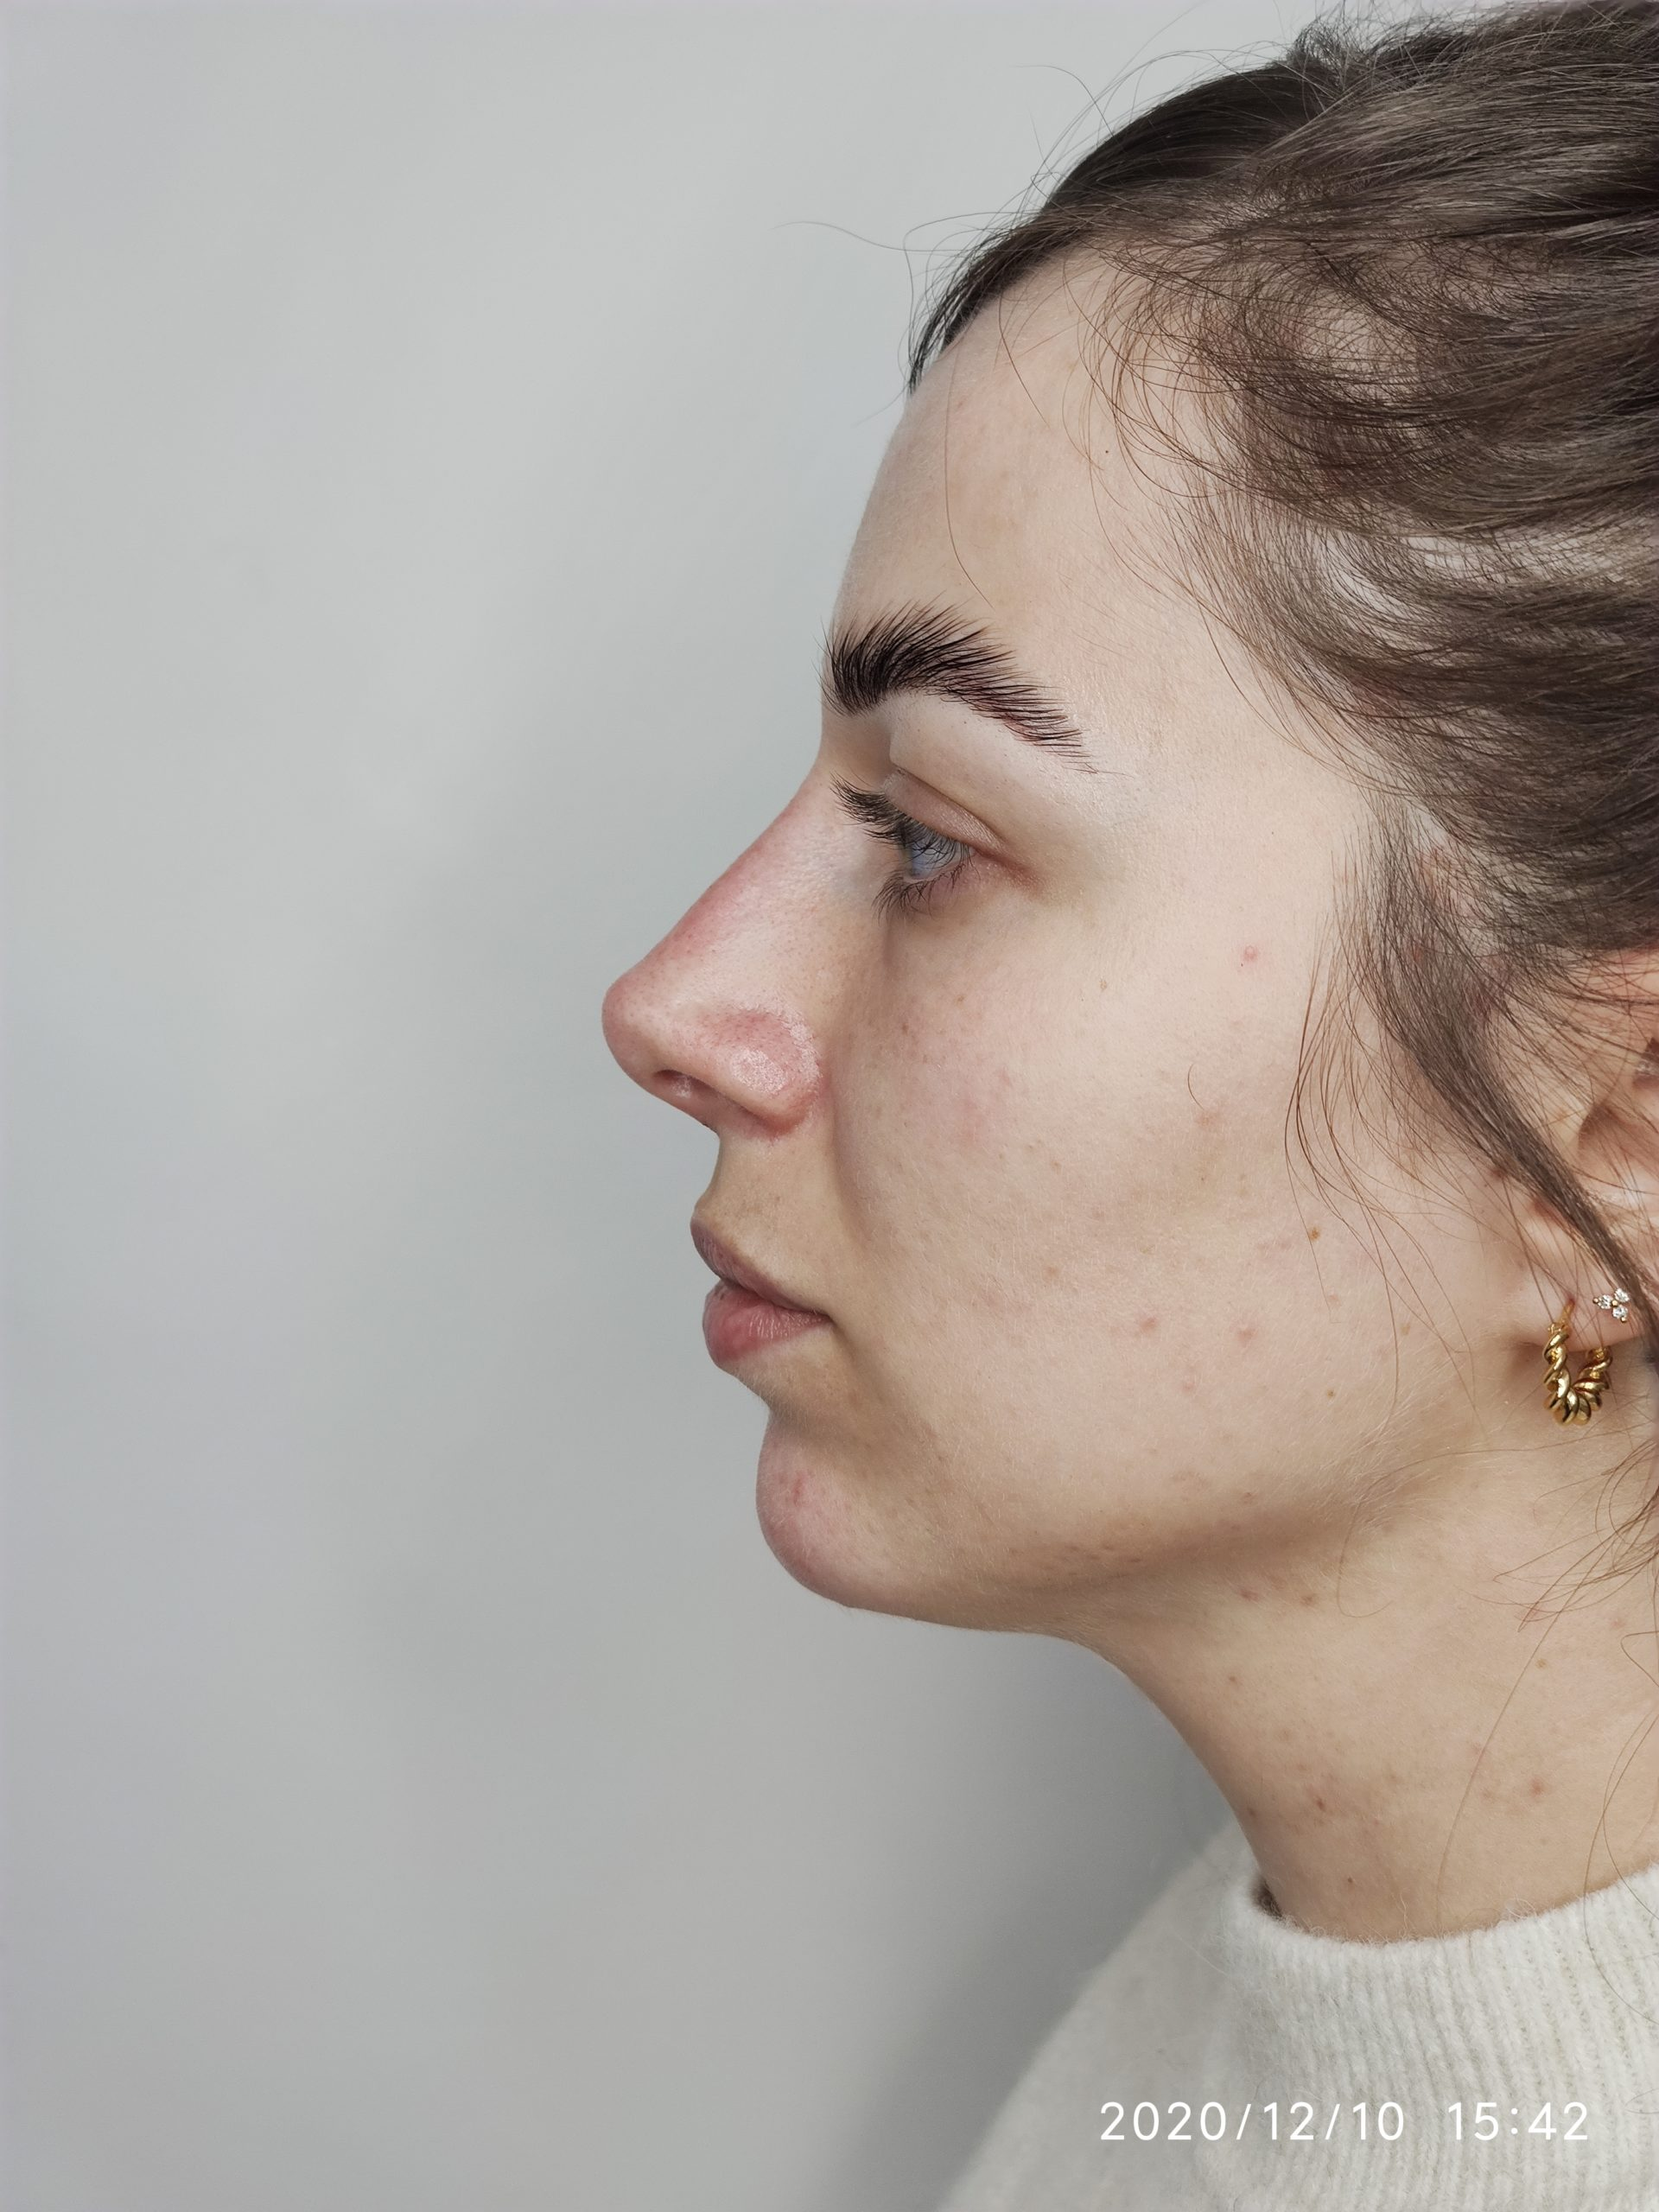 Chin, neck and lower face Dr Ayad Harb